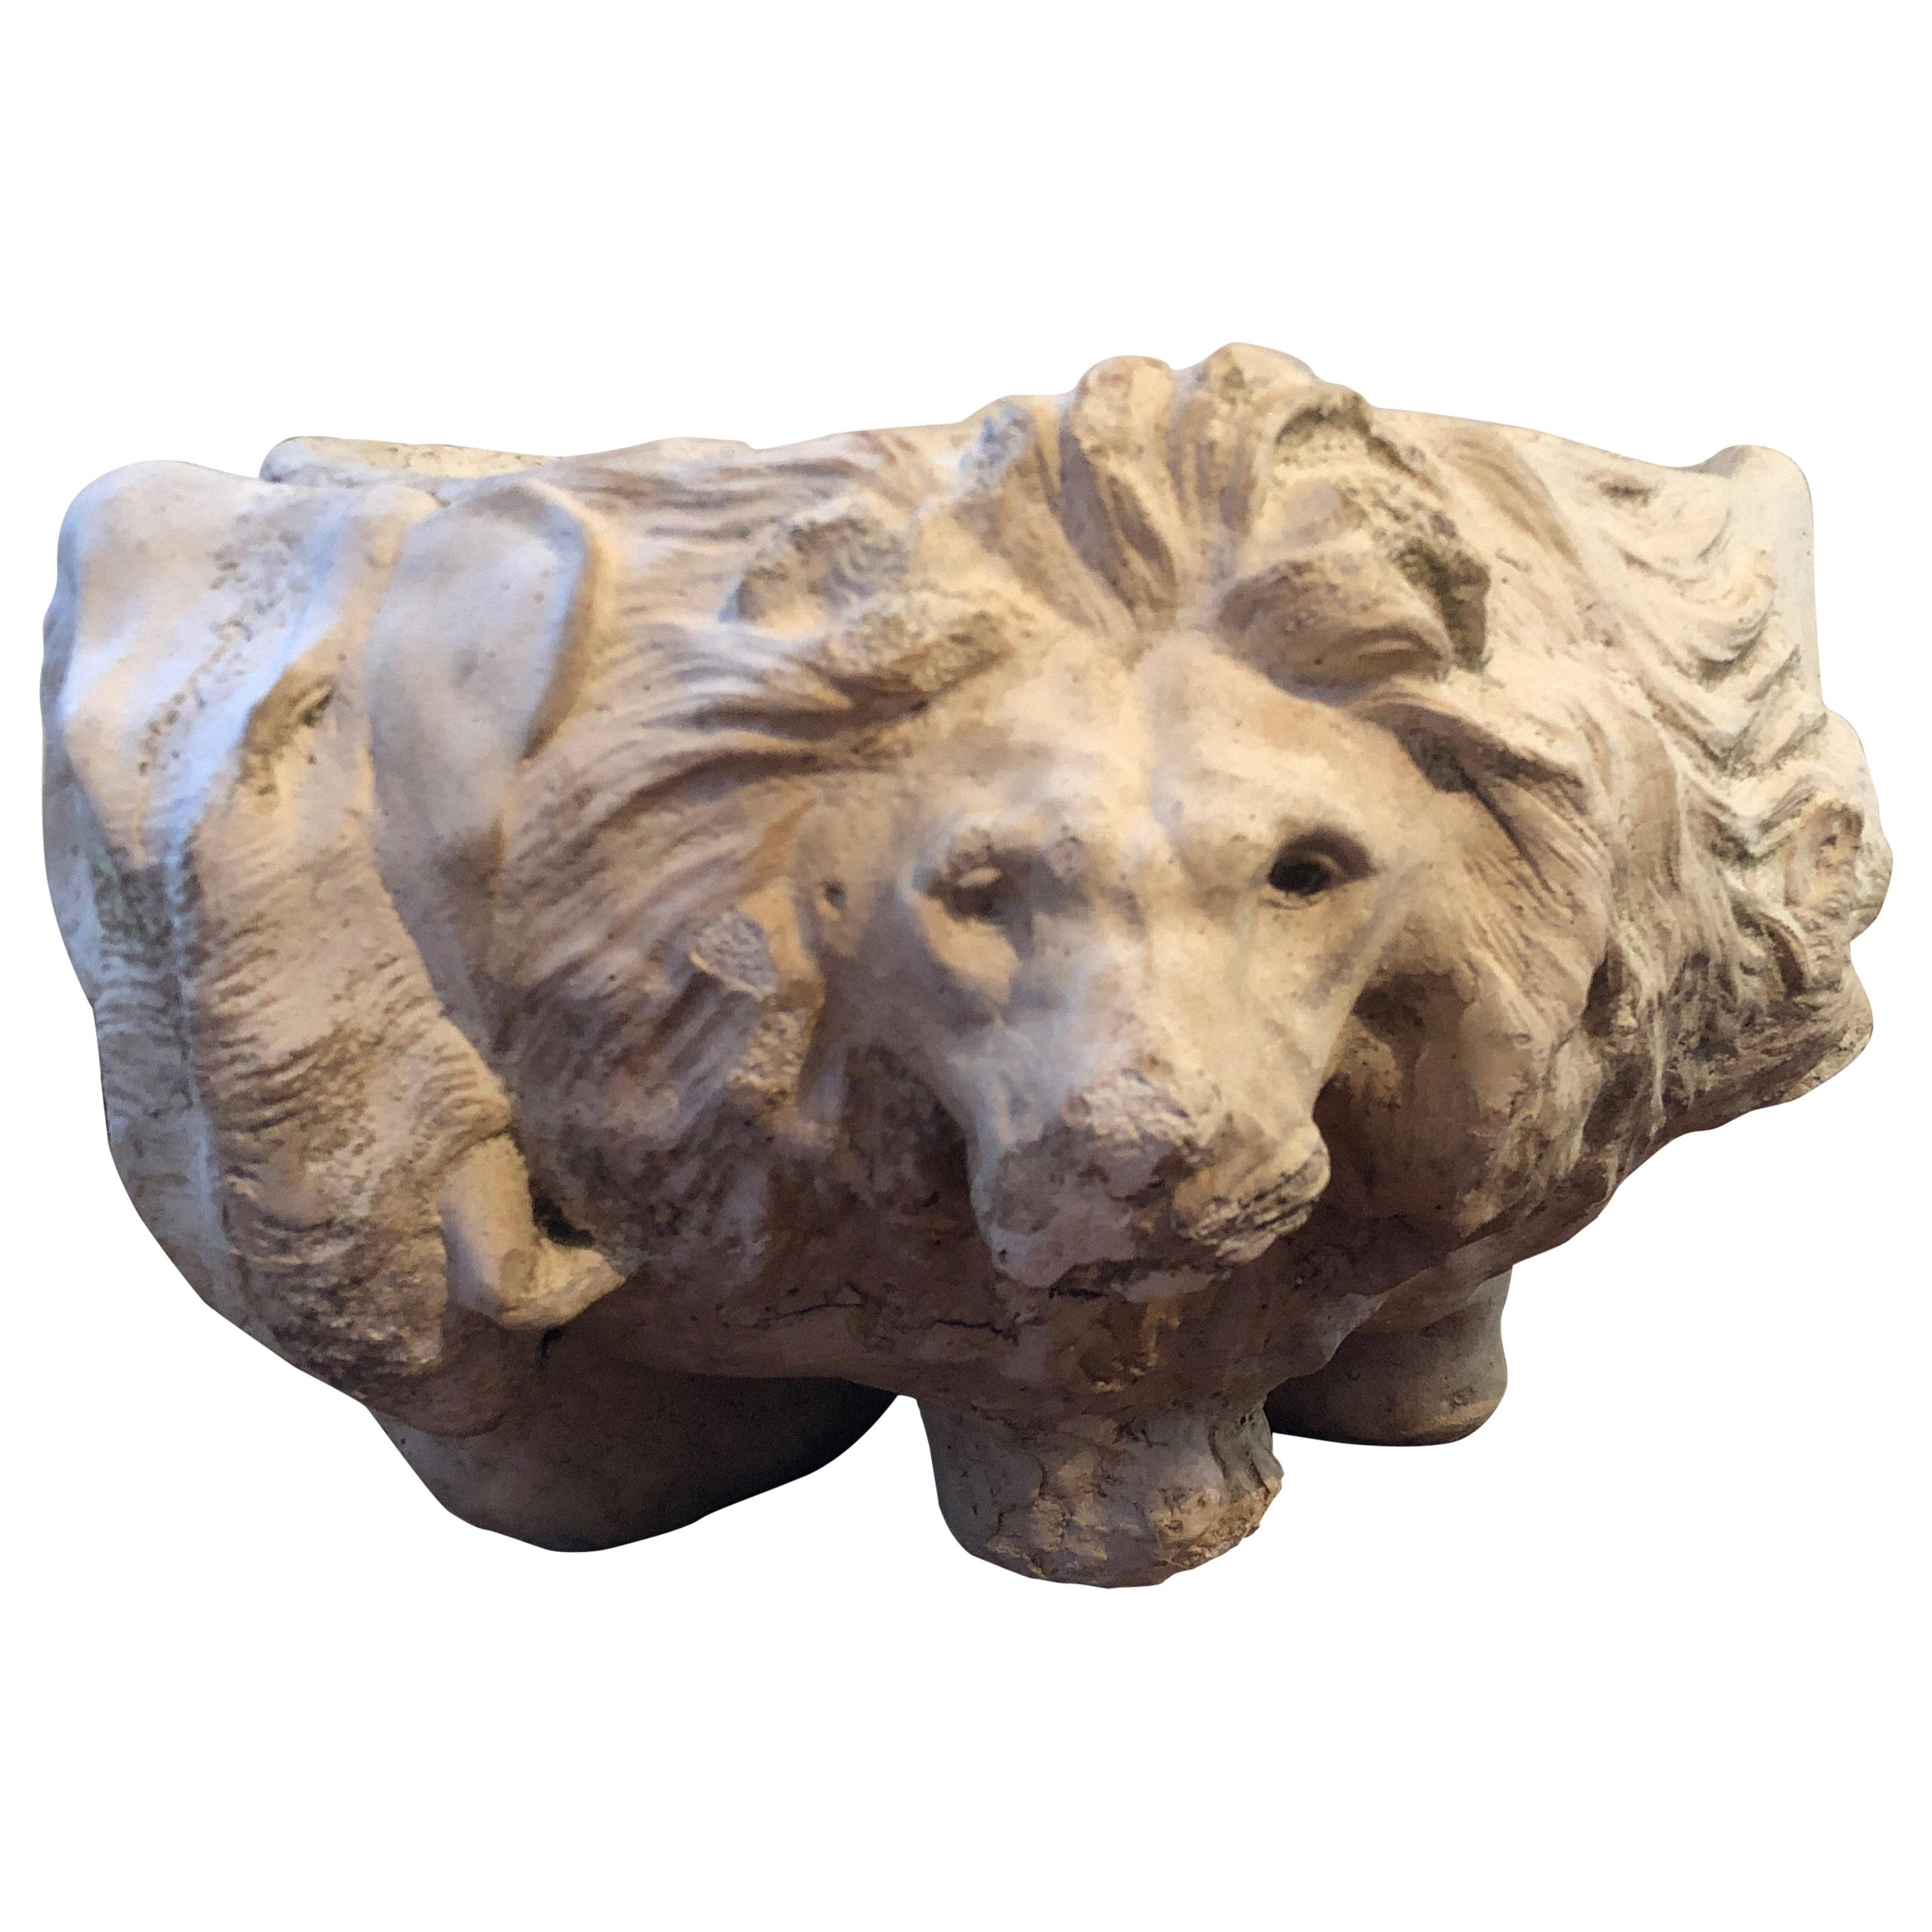 Italian Stone Garden Urn/Planter/Jardinière with Lion and Animal Faces